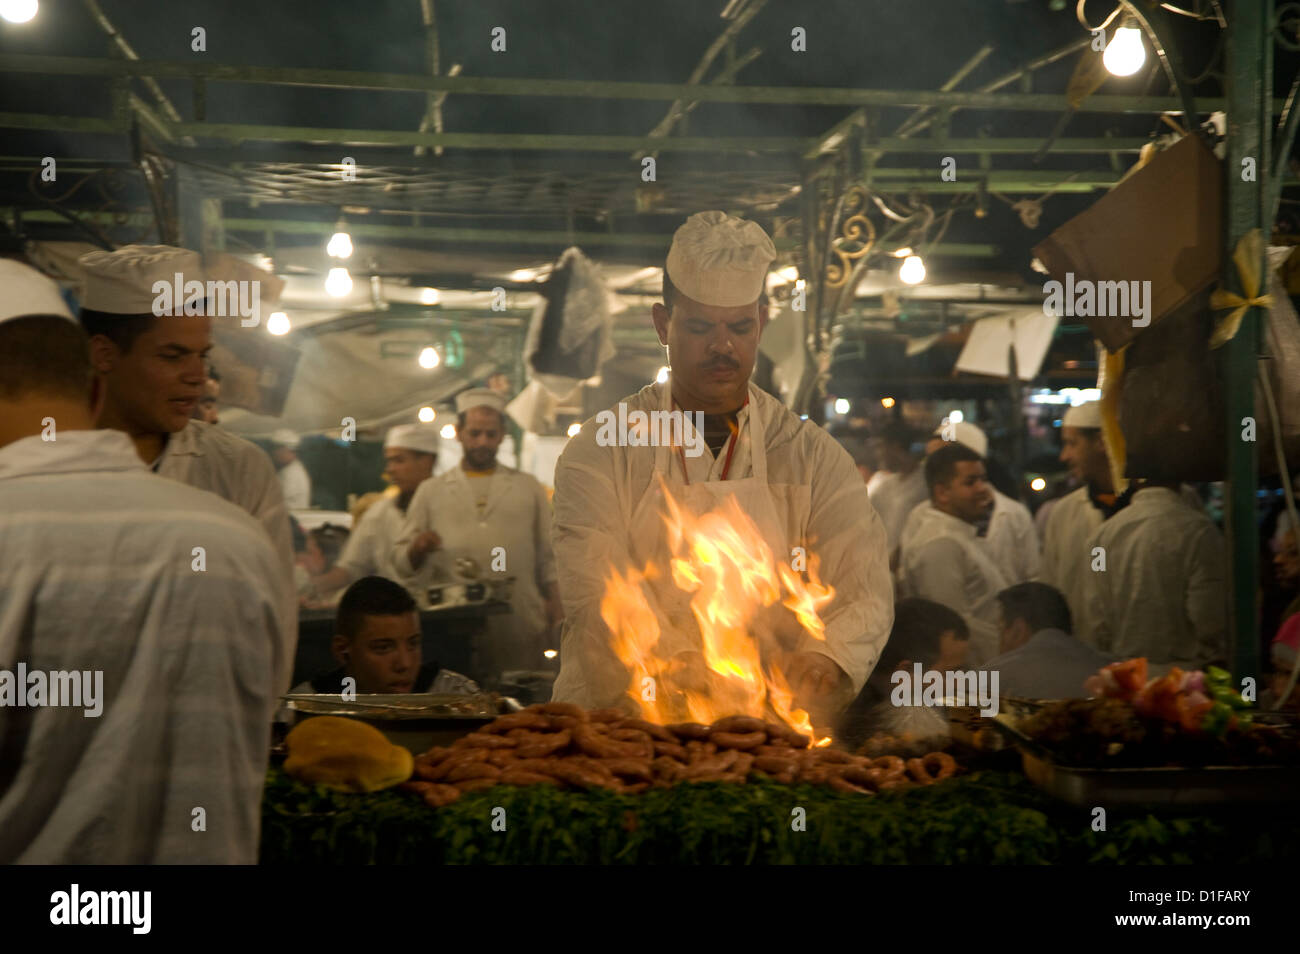 A chef grilling meat at food stalls in the main square, Jemaa el Fna, in Marrakech, Morocco, North Africa - Stock Image